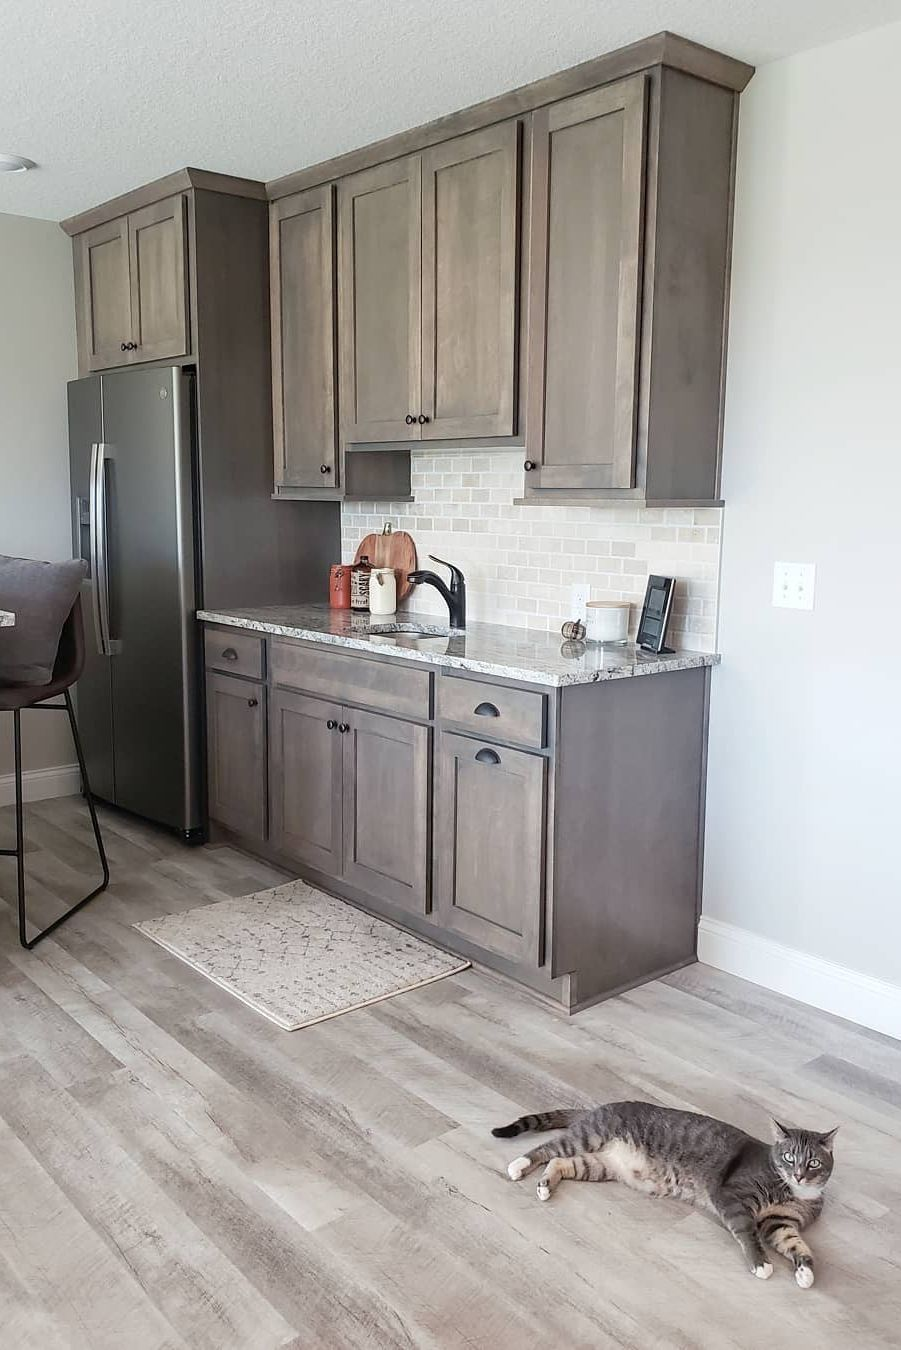 Would You Believe This Is A Basement We Almost Couldn T If It Weren T For Our Adura Max Vinyl Plan Bathroom Remodel Master Kitchen Cabinet Design Vinyl Plank